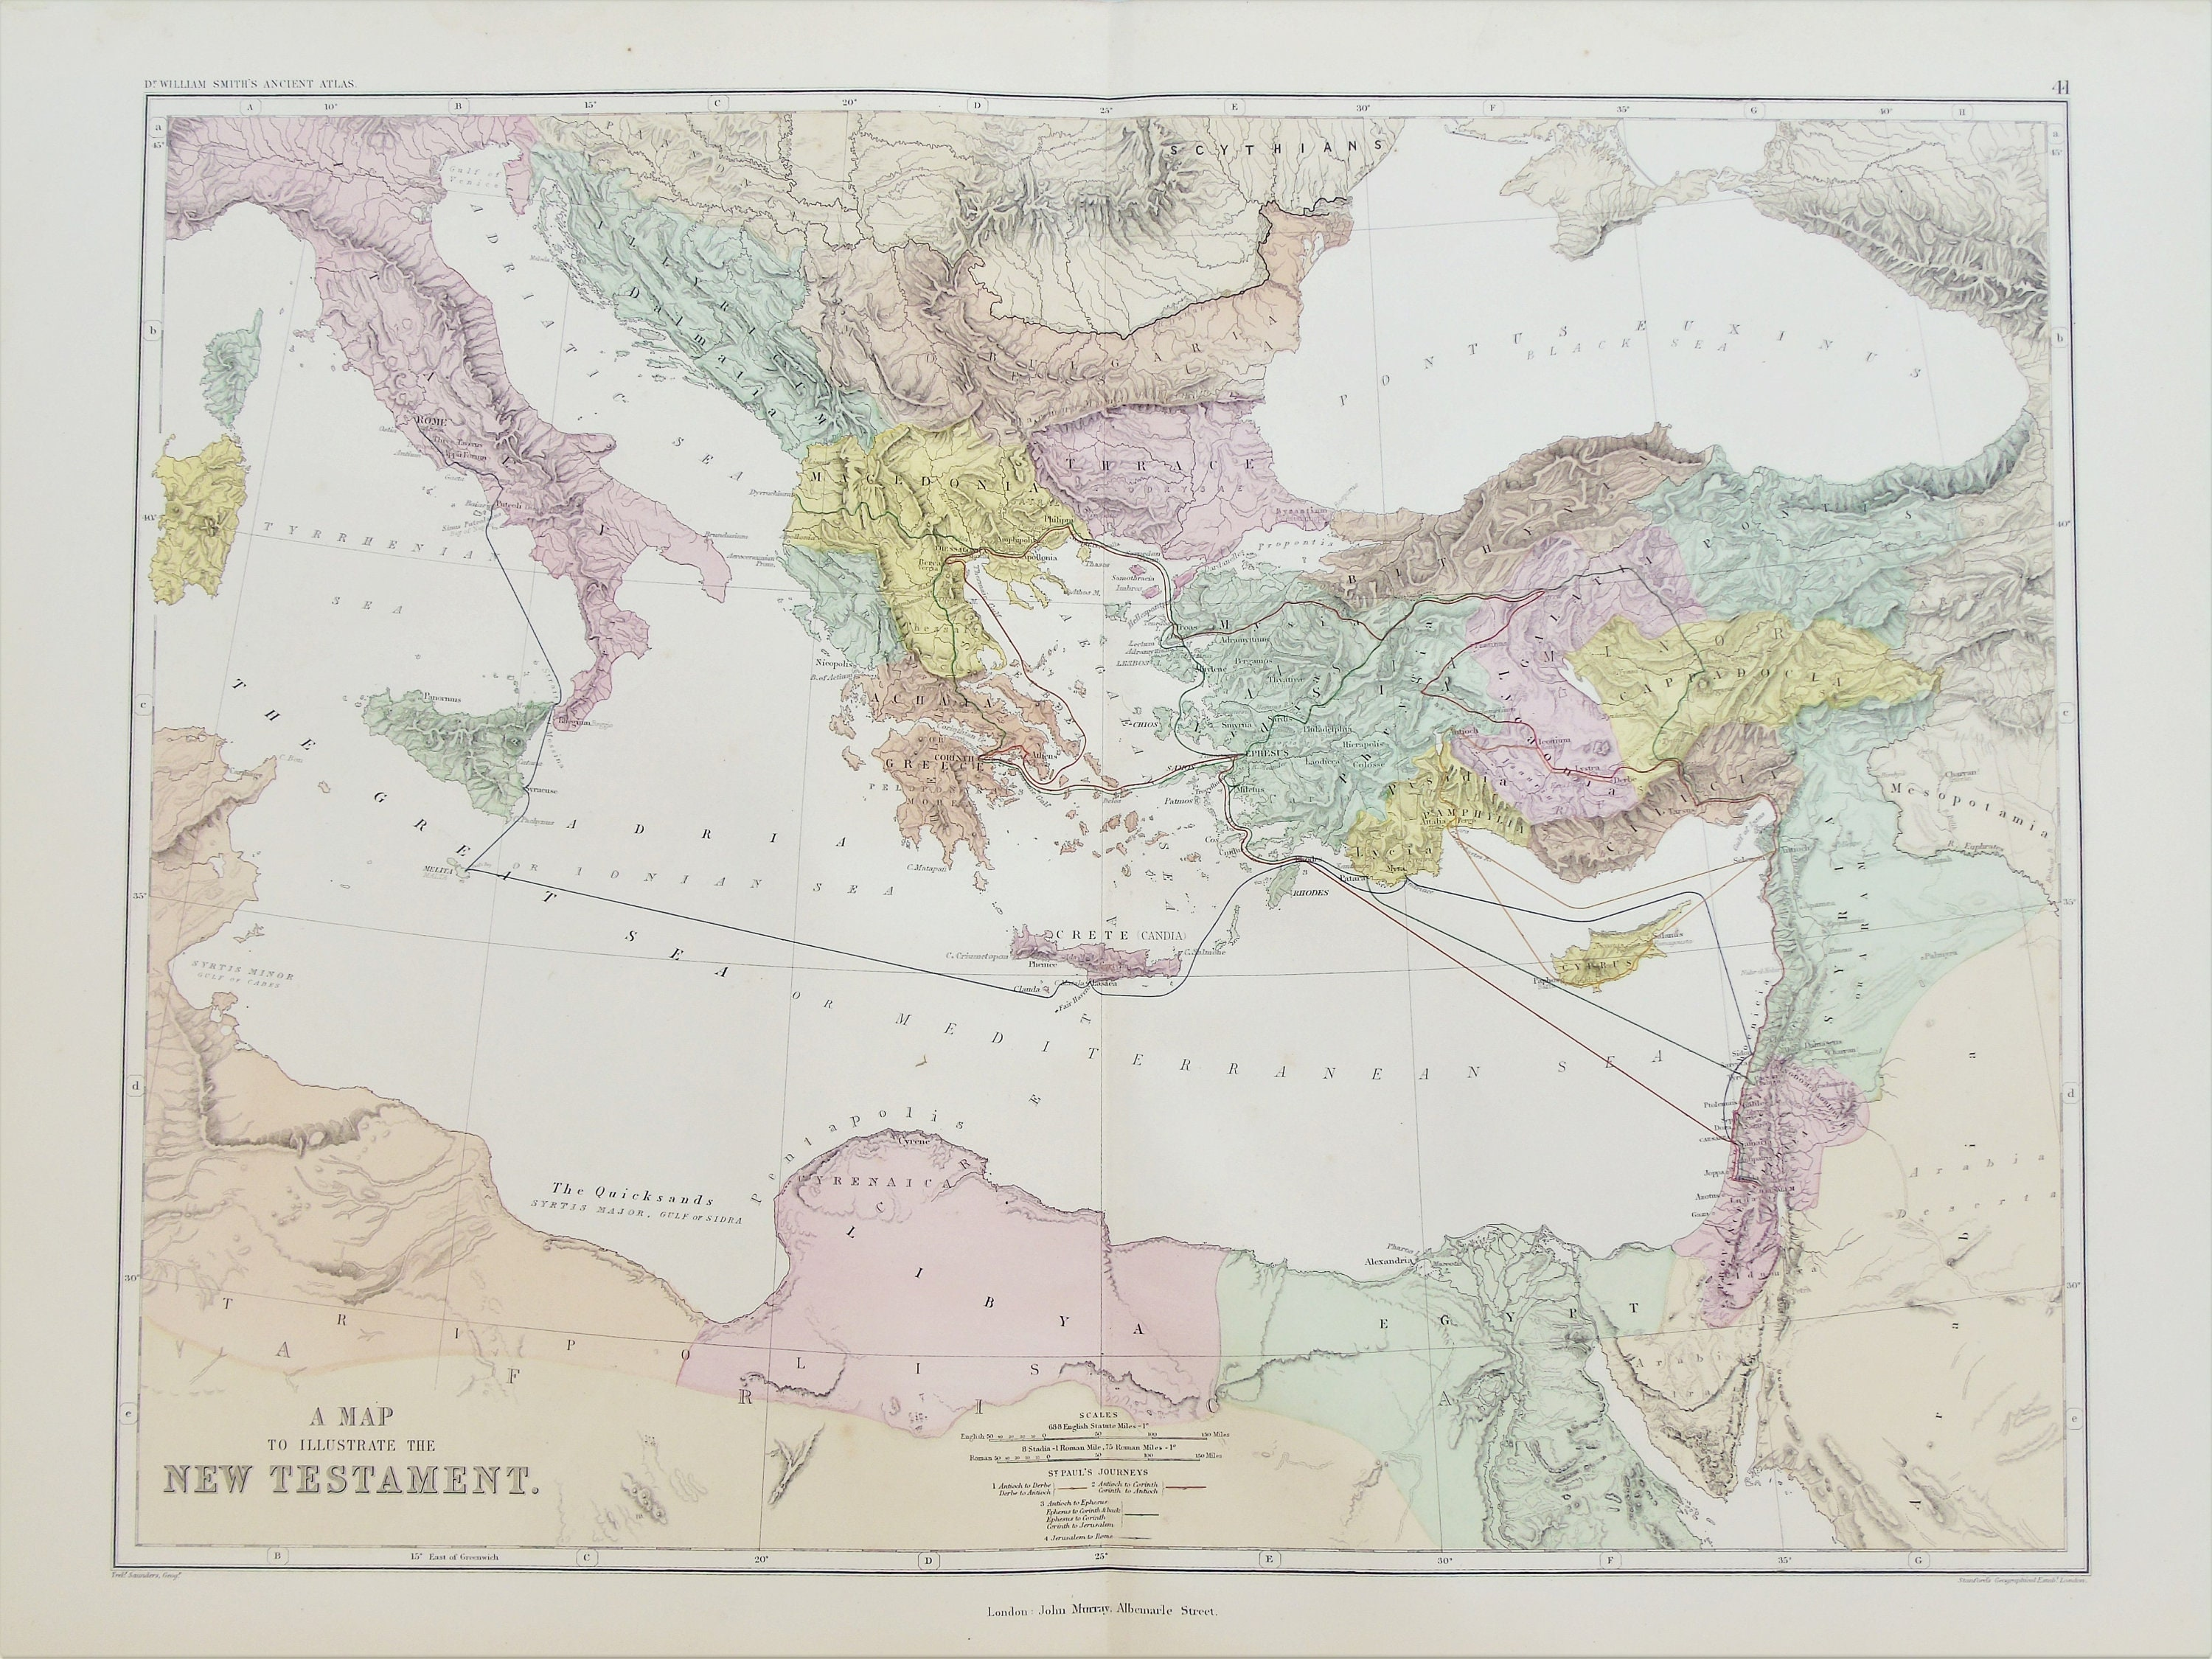 South East Europe, Middle East According to New Testament, c.1872 Antique  Map, Very Large Hand Coloured Map by Weller & Murray